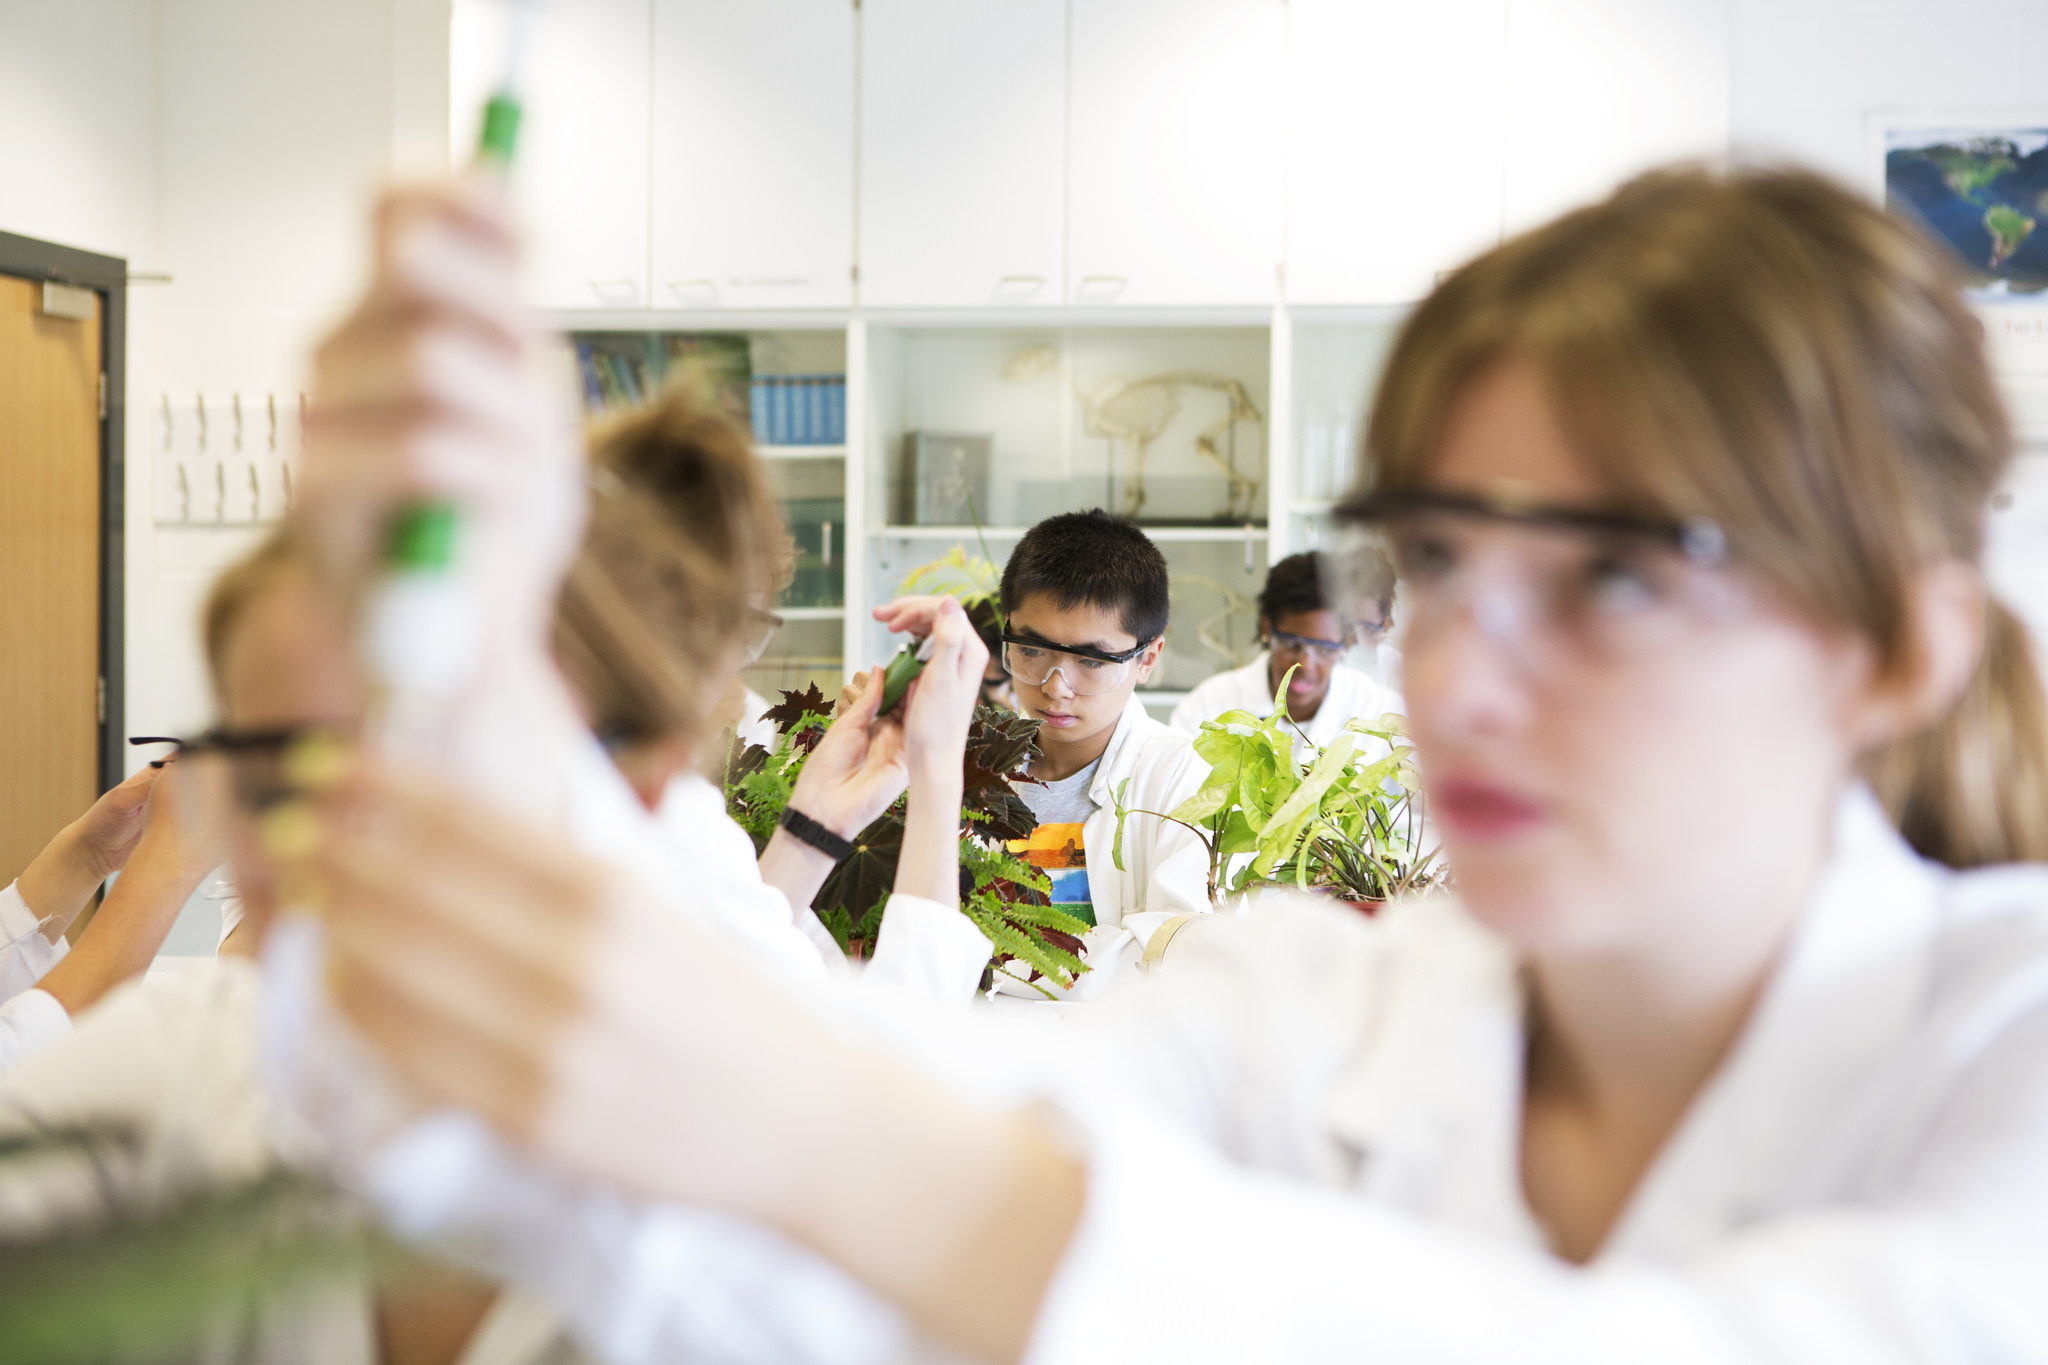 Students in a science lesson